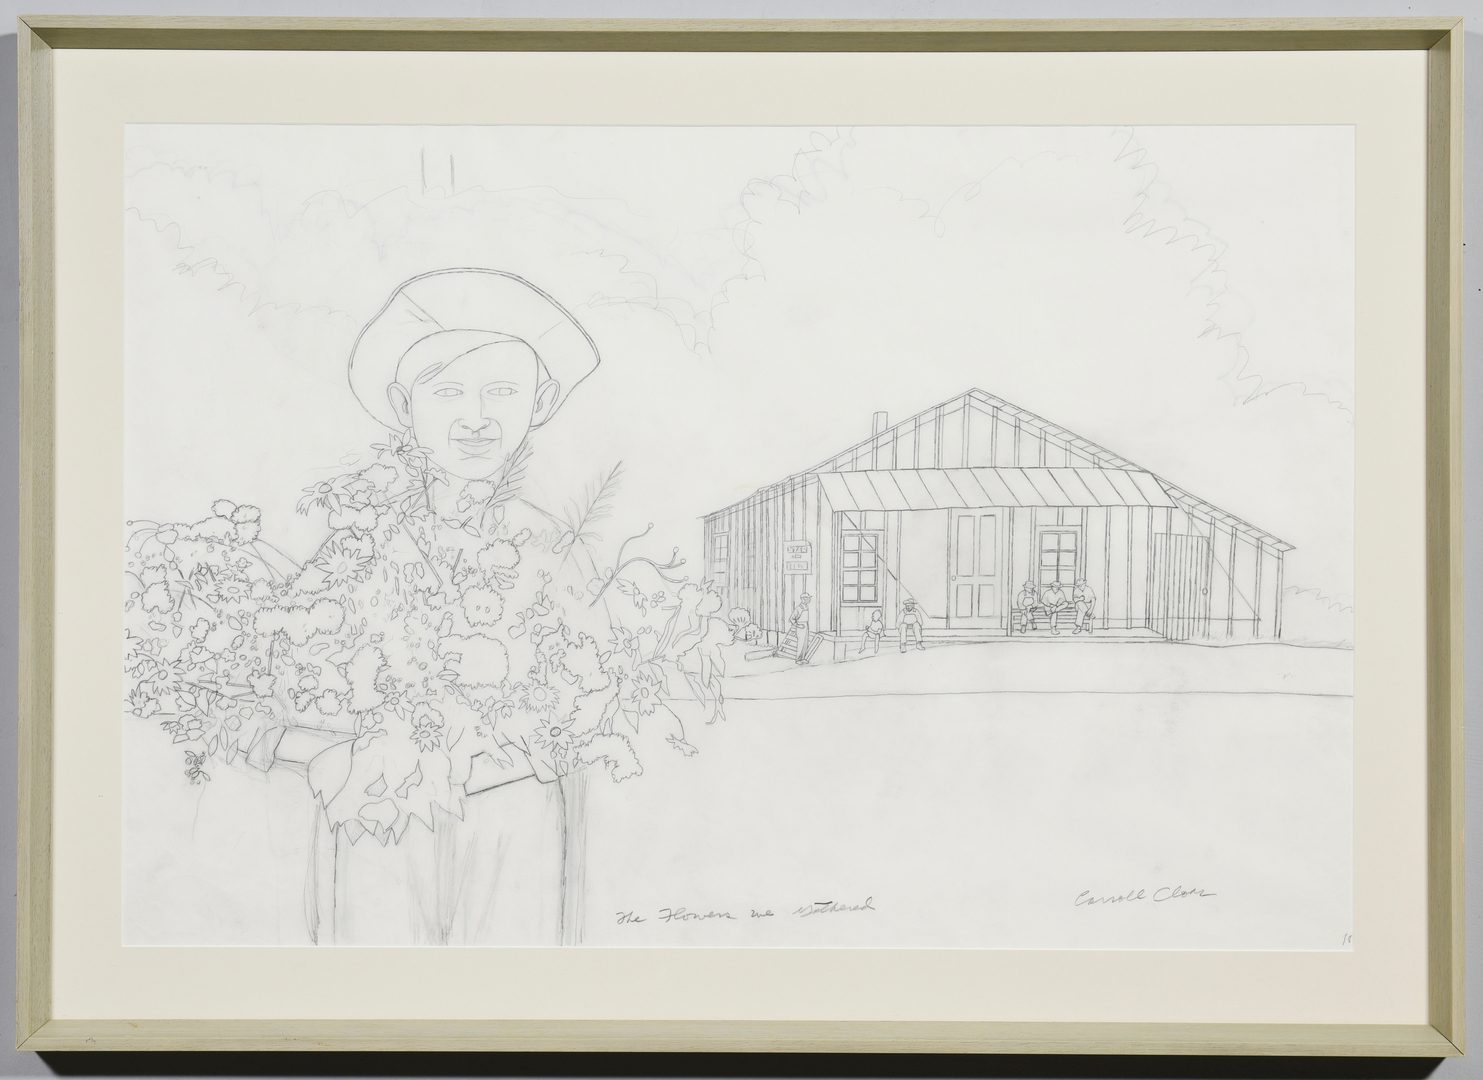 Lot 212: Carroll Cloar Drawing, Flowers We Gathered